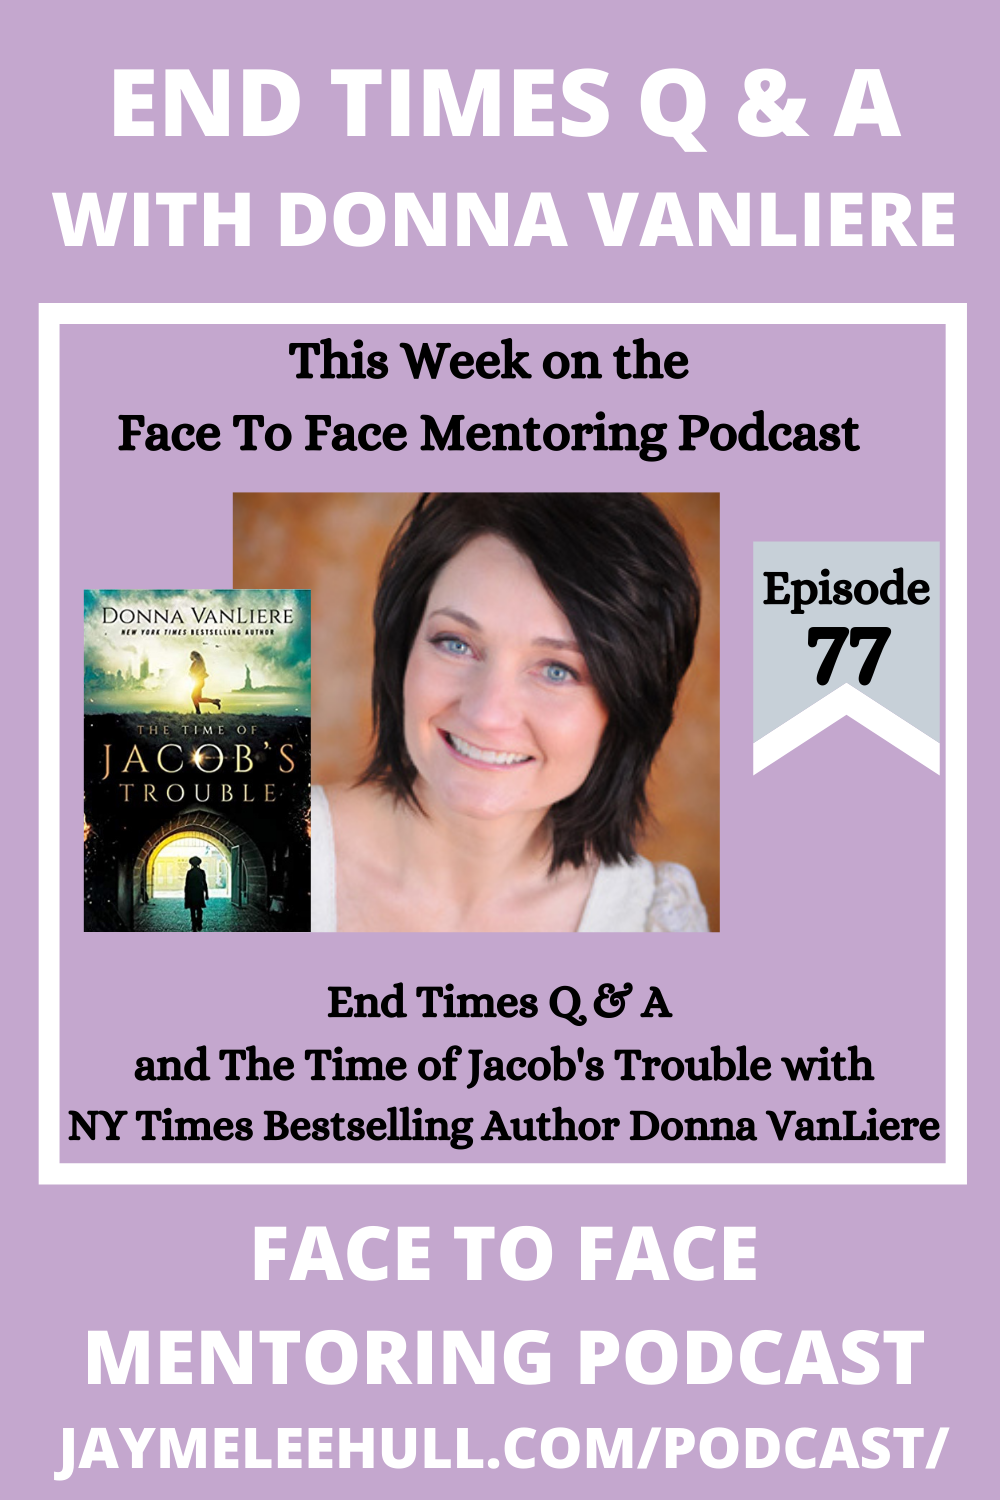 Face to Face Mentoring Podcast Ep.77: End Times Q & A and The Time of Jacob's Trouble with Donna VanLiere, #JaymeLeeHull #FaceToFaceMentoringPodcast